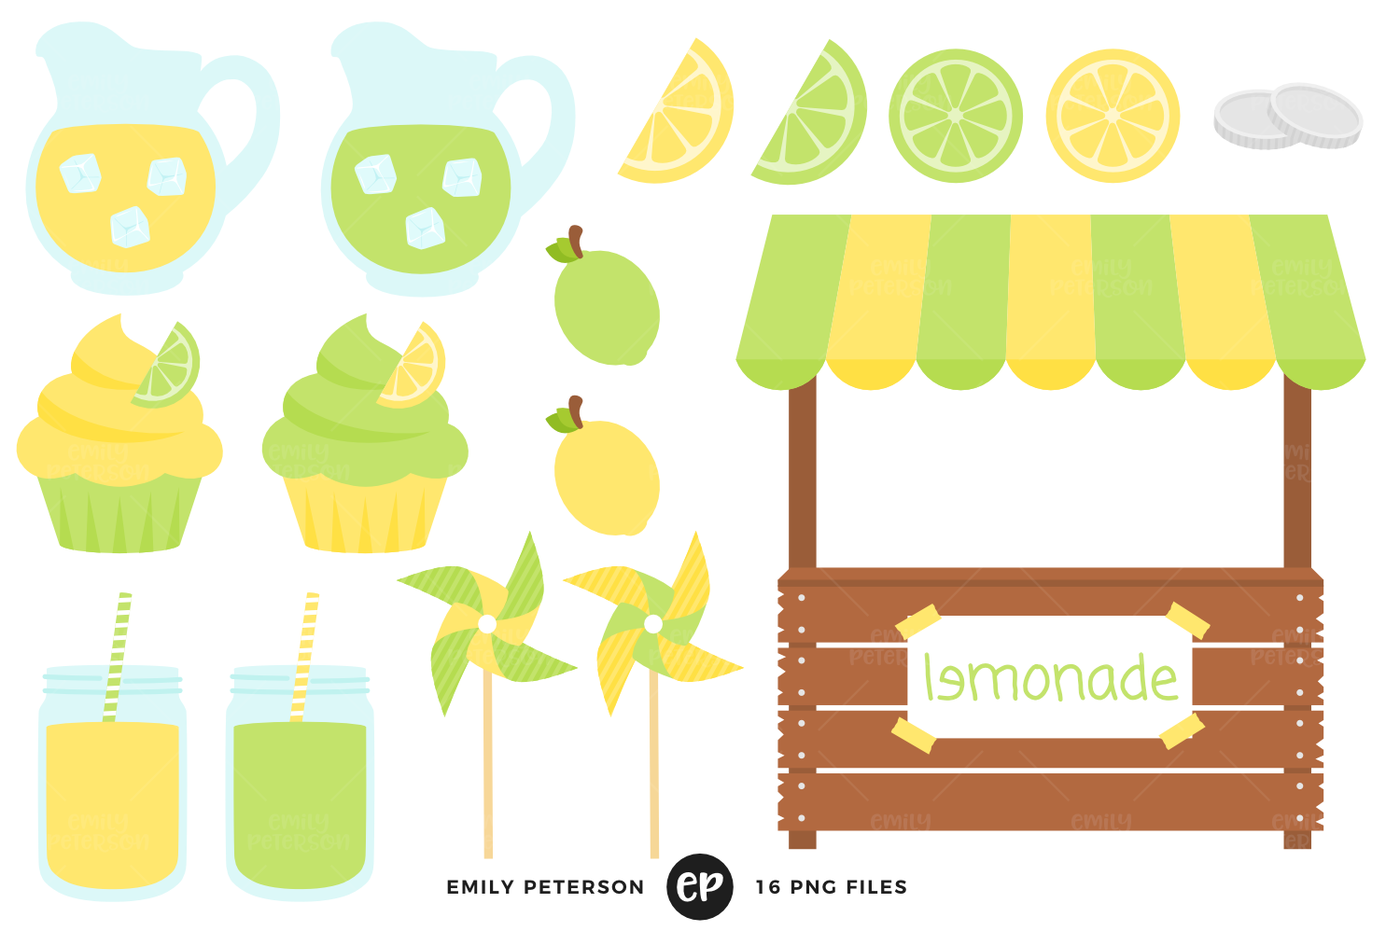 Vintage lemonade stand clipart picture stock Lemonade Stand Clipart By Emily Peterson Studio ... picture stock